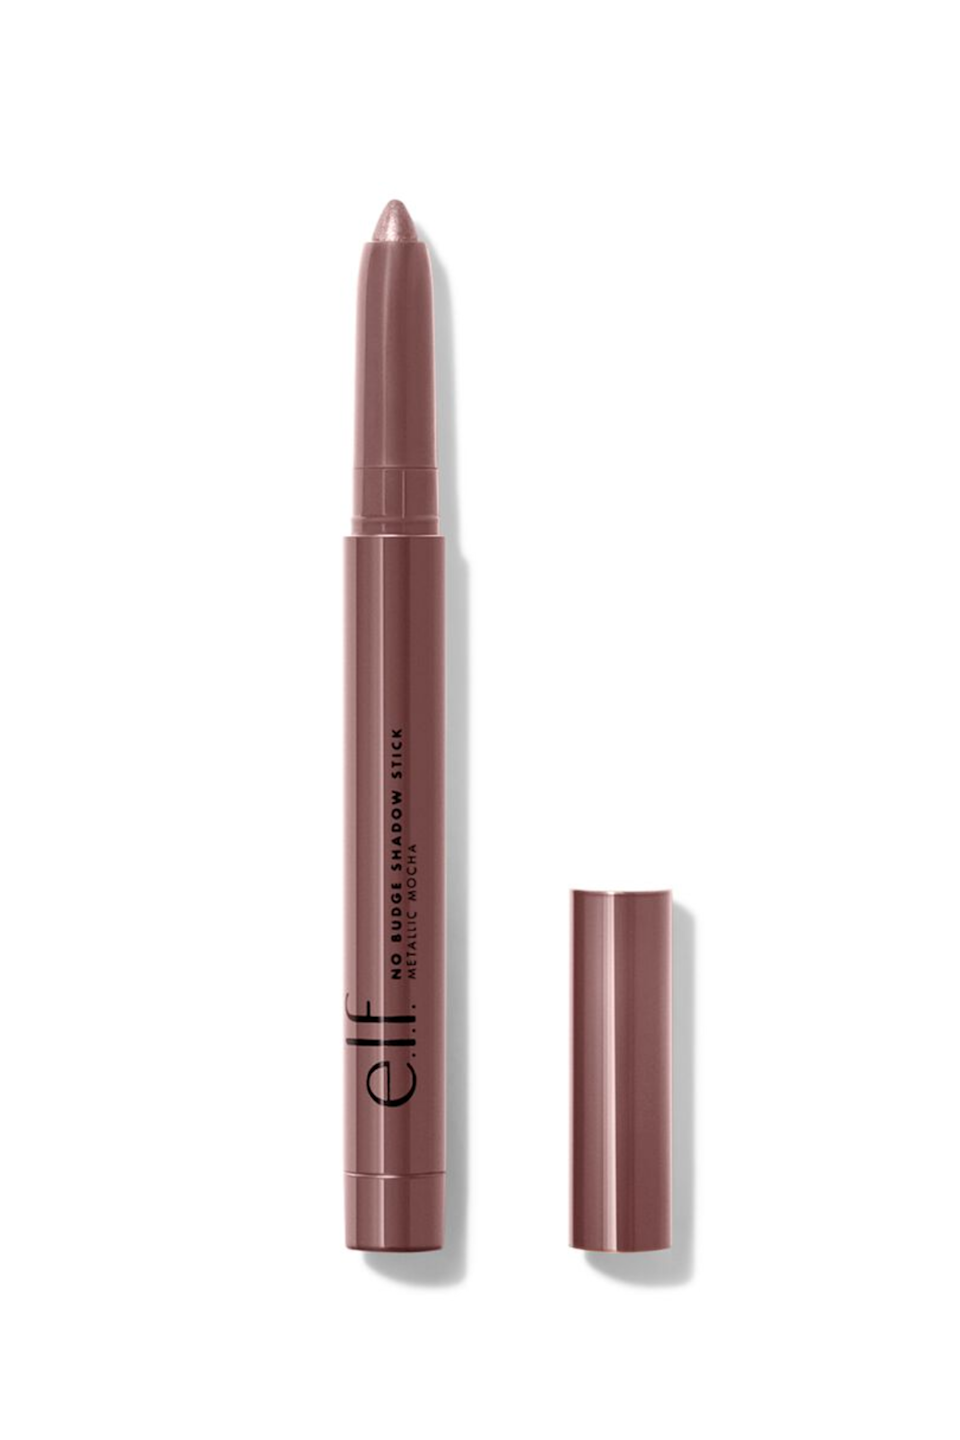 """<p><strong>e.l.f. Cosmetics</strong></p><p>ulta.com</p><p><strong>$5.00</strong></p><p><a href=""""https://go.redirectingat.com?id=74968X1596630&url=https%3A%2F%2Fwww.ulta.com%2Fp%2Fno-budge-shadow-stick-pimprod2020787&sref=https%3A%2F%2Fwww.seventeen.com%2Fbeauty%2Fmakeup-skincare%2Fg36866431%2Fbest-elf-makeup-skincare-products%2F"""" rel=""""nofollow noopener"""" target=""""_blank"""" data-ylk=""""slk:Shop Now"""" class=""""link rapid-noclick-resp"""">Shop Now</a></p><p>The product lives up to its name — the No Budge Shadow Stick will stay in place for hours, no matter where you place it. You can use it as a shadow on your lids, a liner on your lower waterline or a highlight on your cheekbones (depending on the color).</p>"""